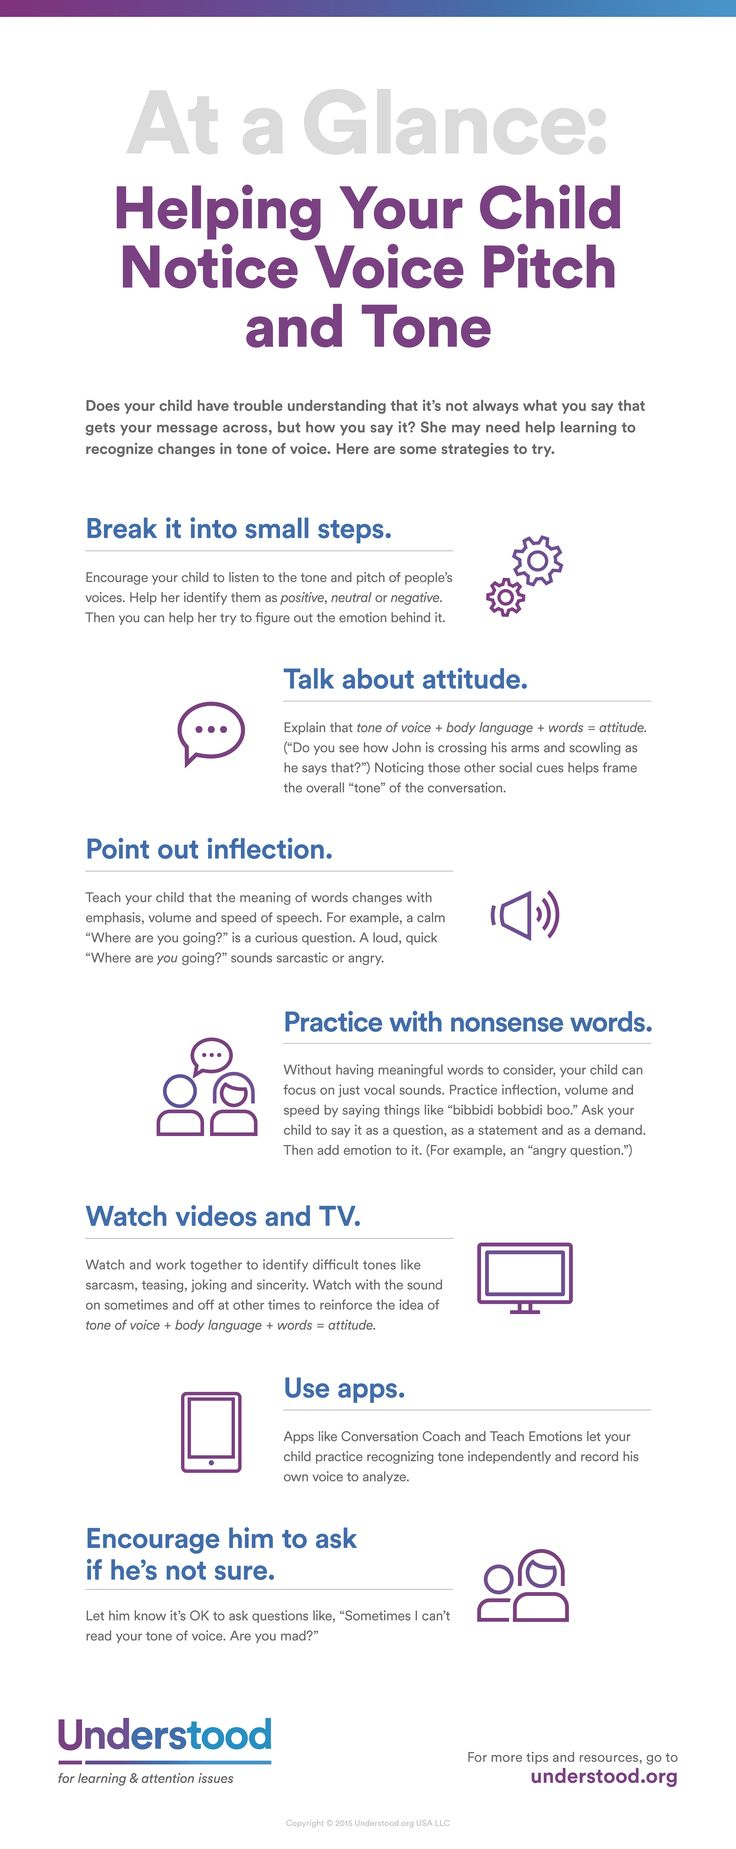 At a glance helping your child notice voice pitch and